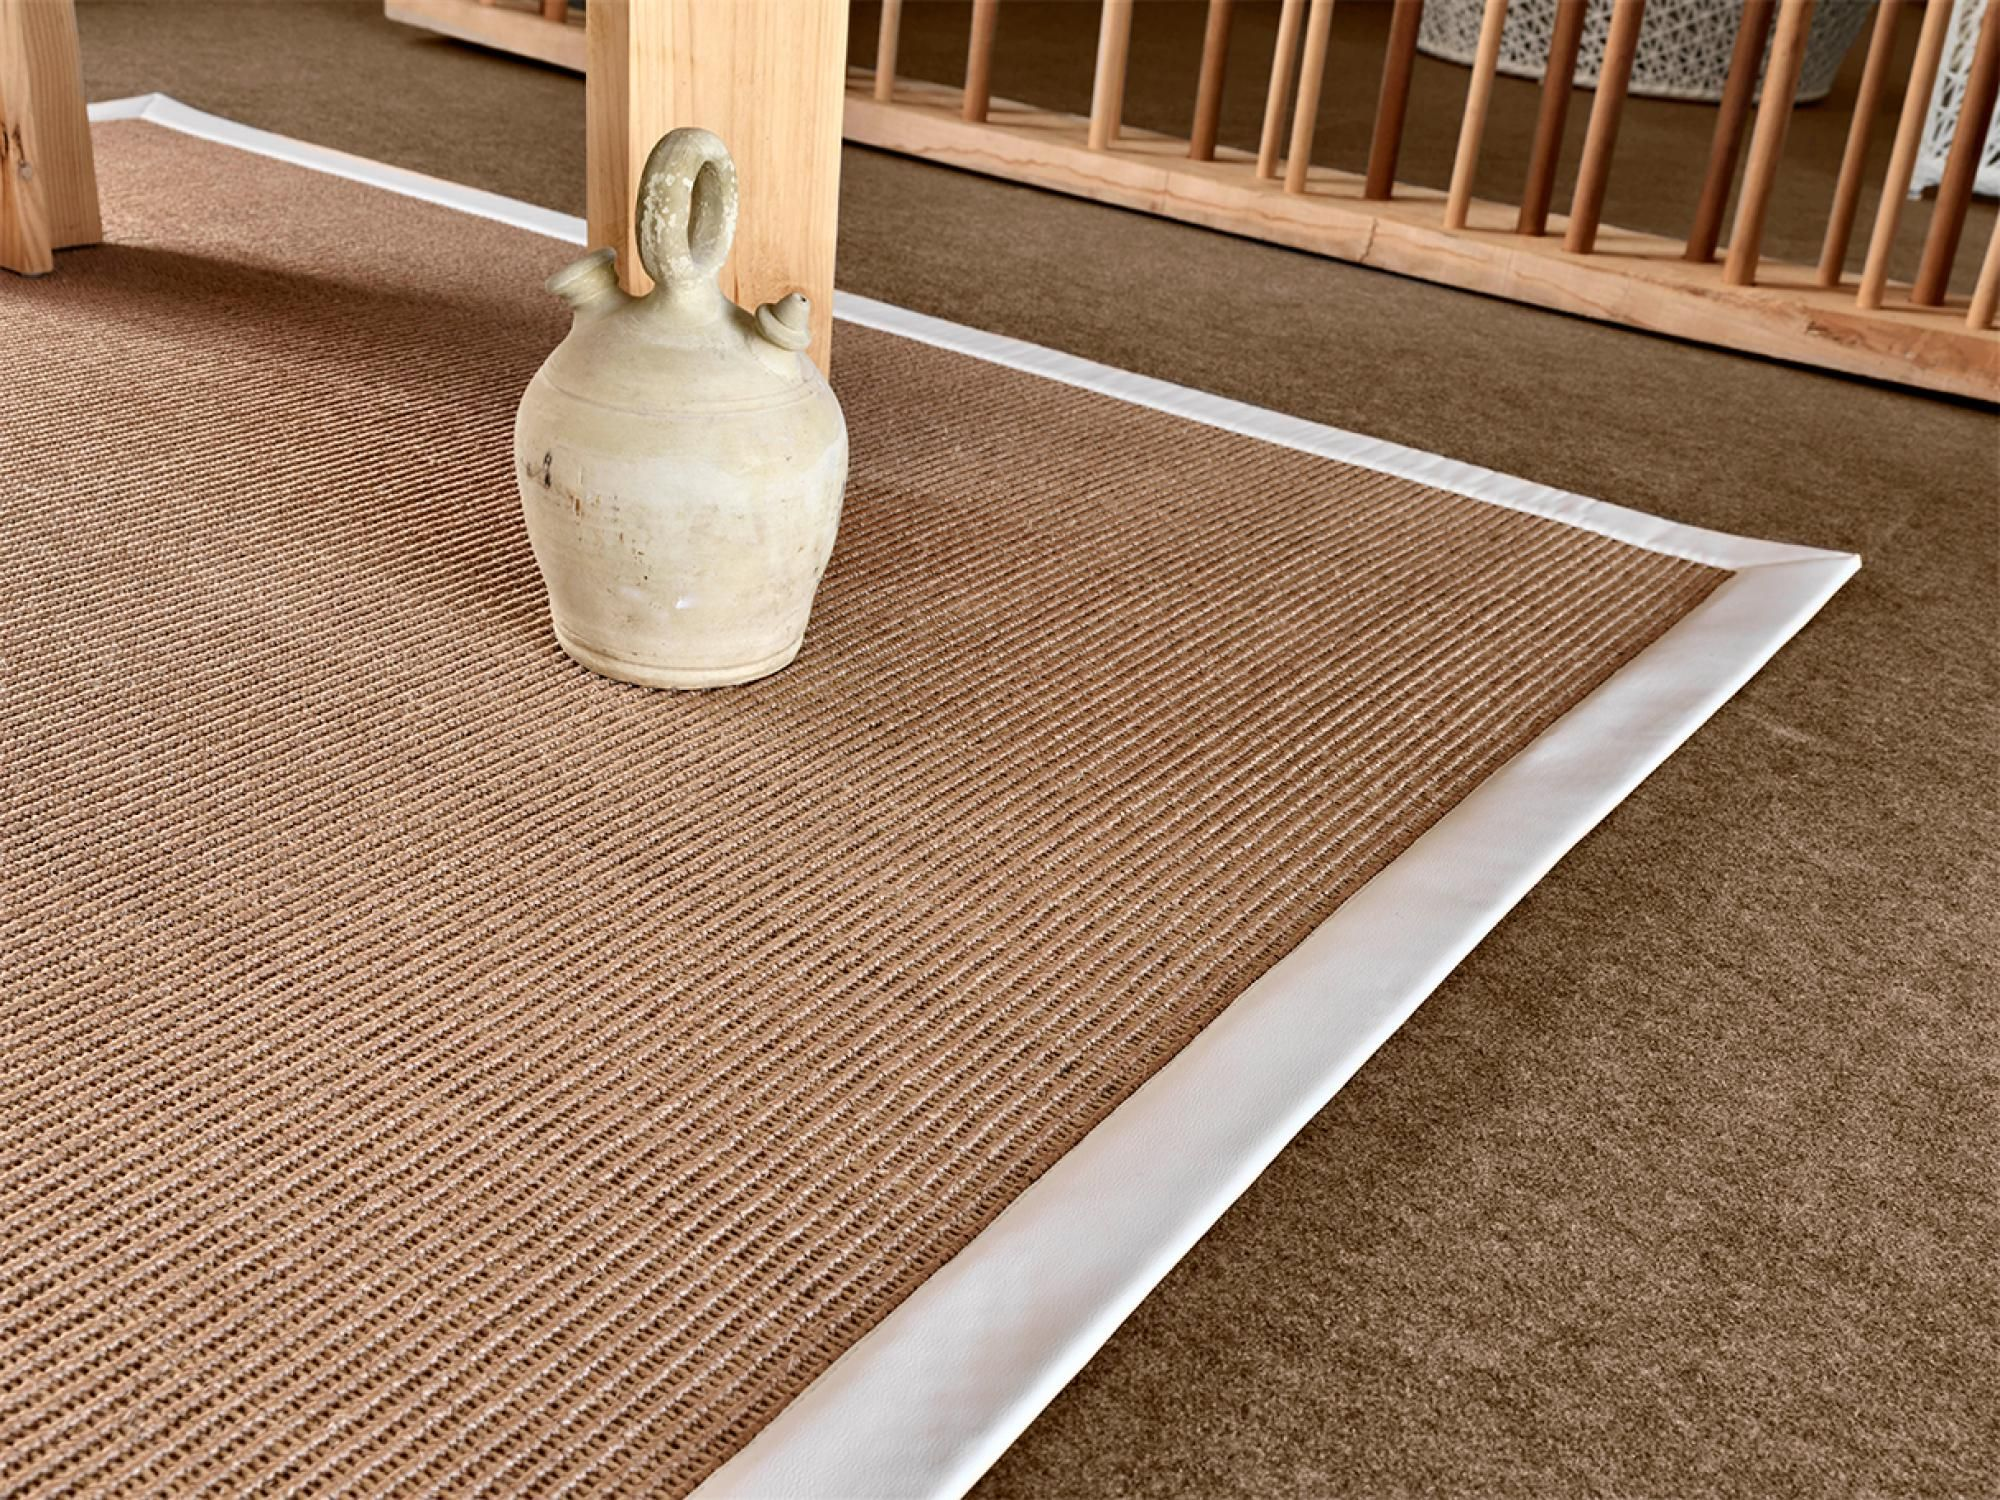 High quality sisal natural rug. Naturtex can customize this rug in both sizes and borders options. Also available as a wall to wall carpet.